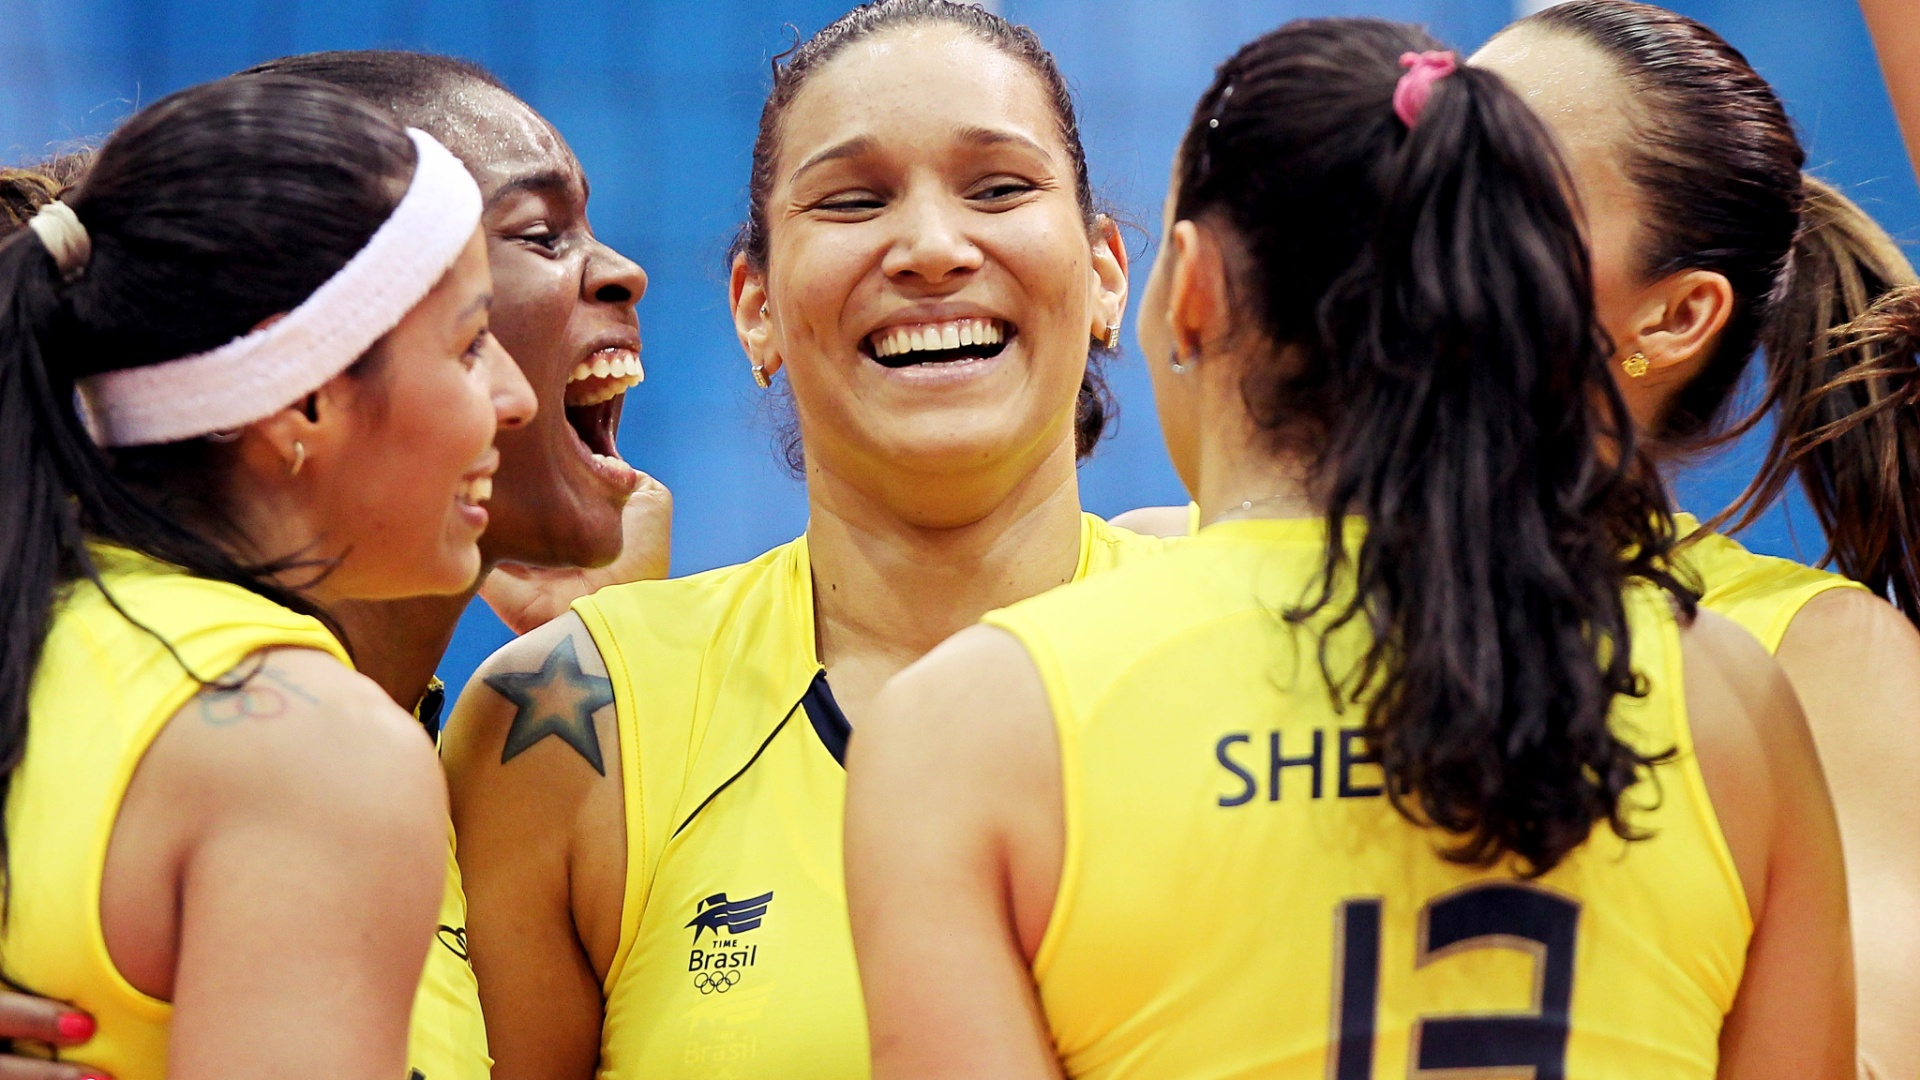 Paula, Fabiana, Tandara, Thasa e Sheilla comemoram vitria do Brasil por 3 sets a 1 sobre Cuba (17/10/2011)